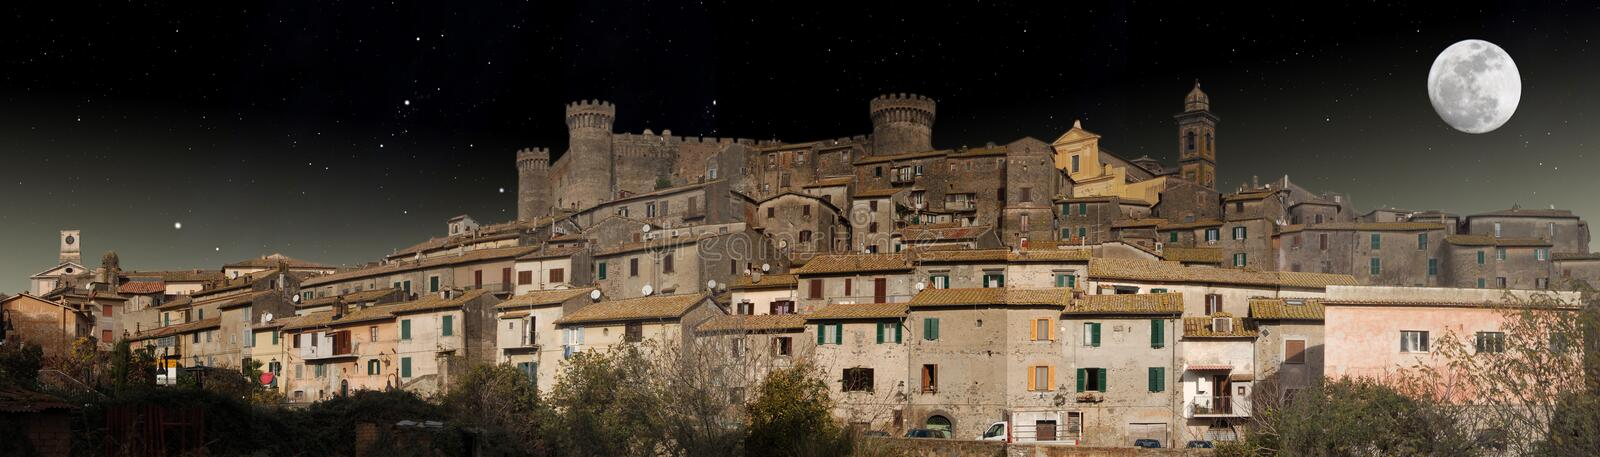 Panoramic night view of Bracciano in the moonlight royalty free stock image